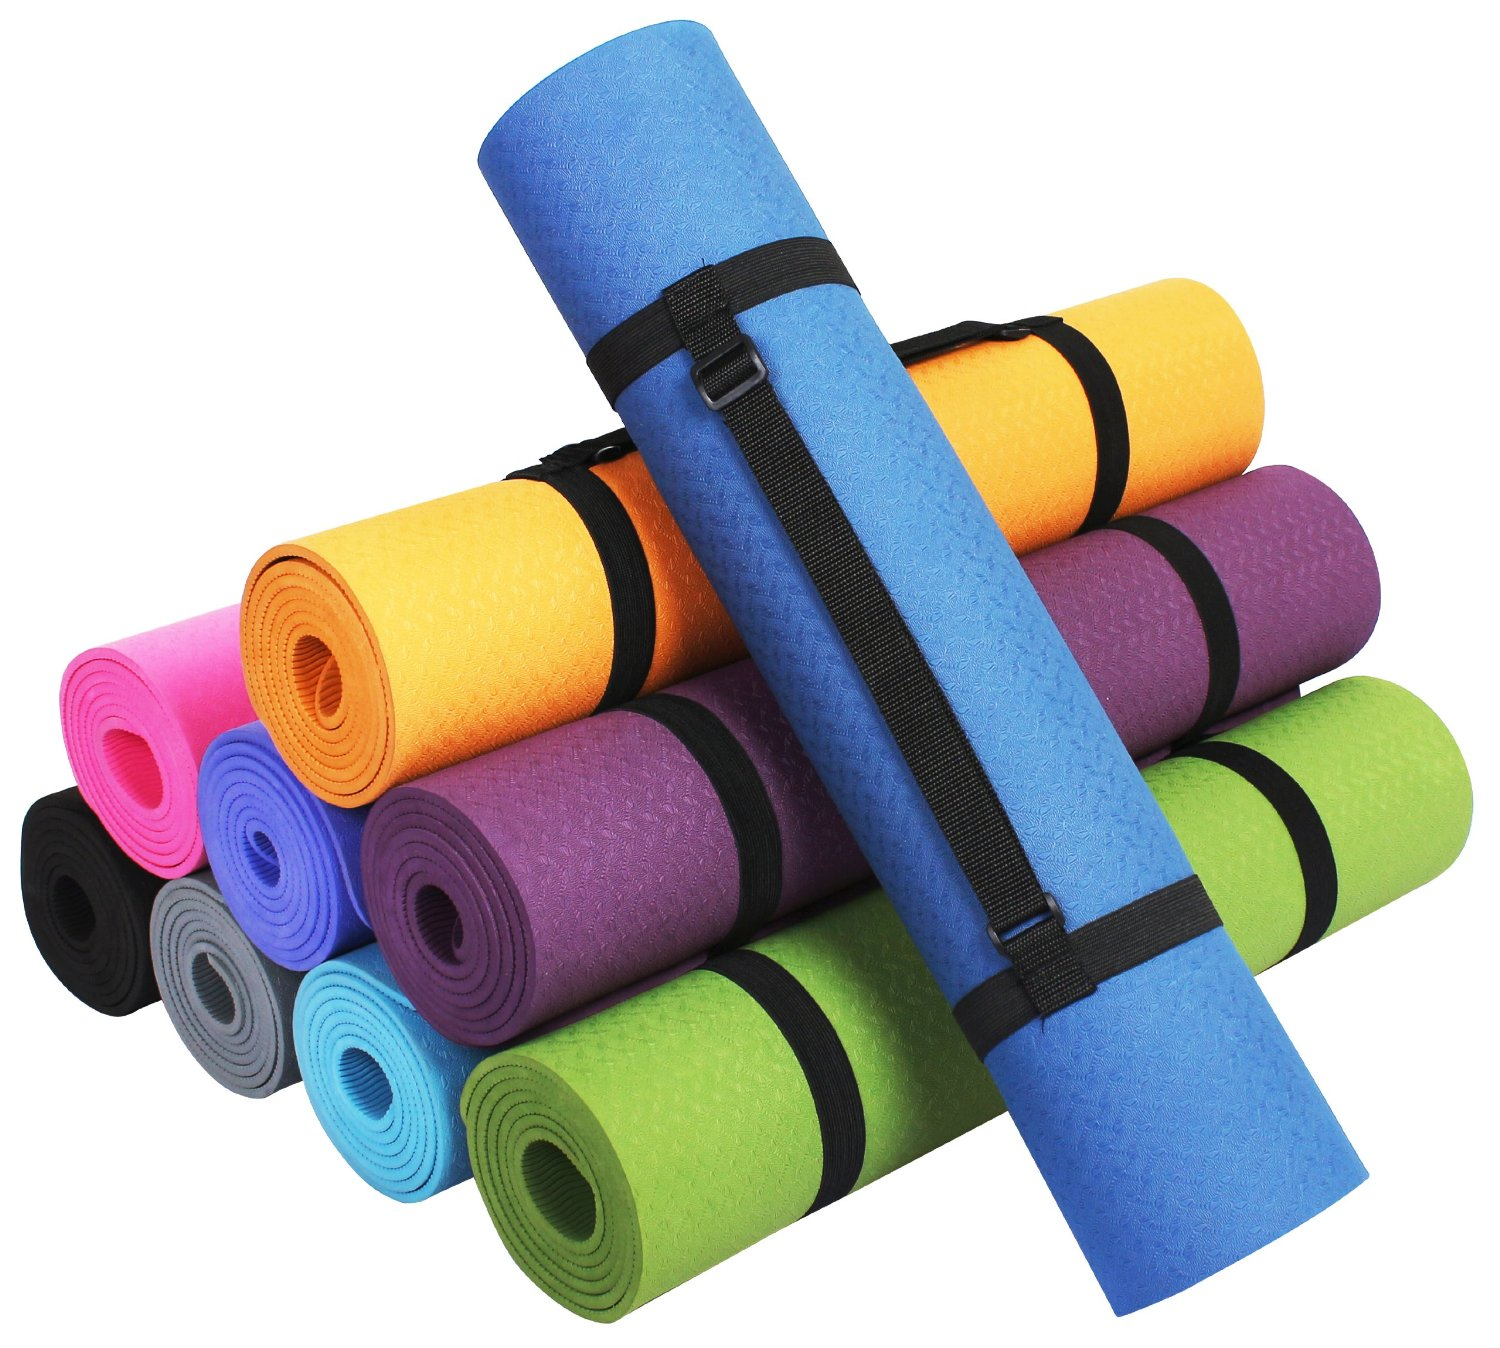 Premium Slip Resistant And Waterproof Yoga Mat